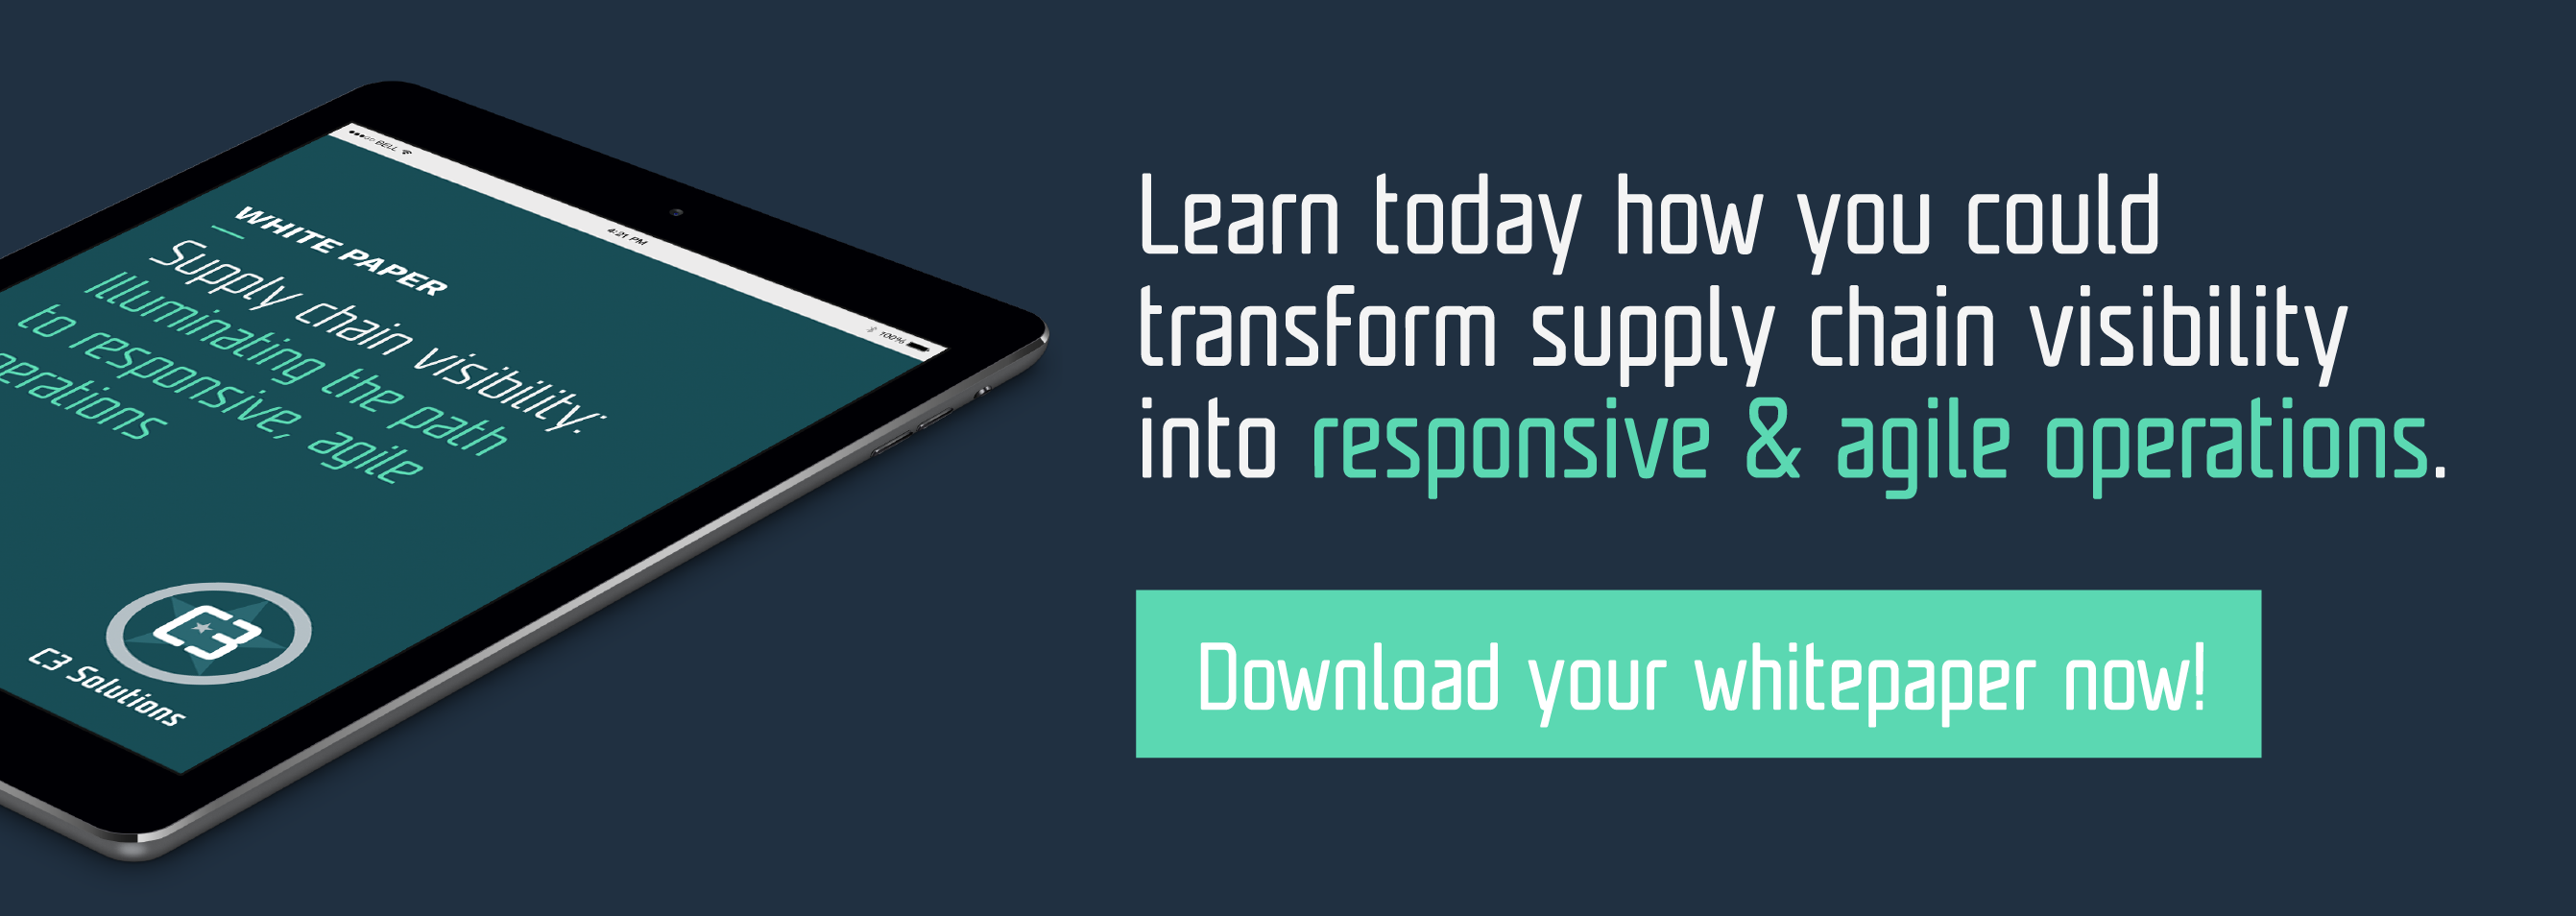 Supply Chain Visibility White Paper CTA-3.png